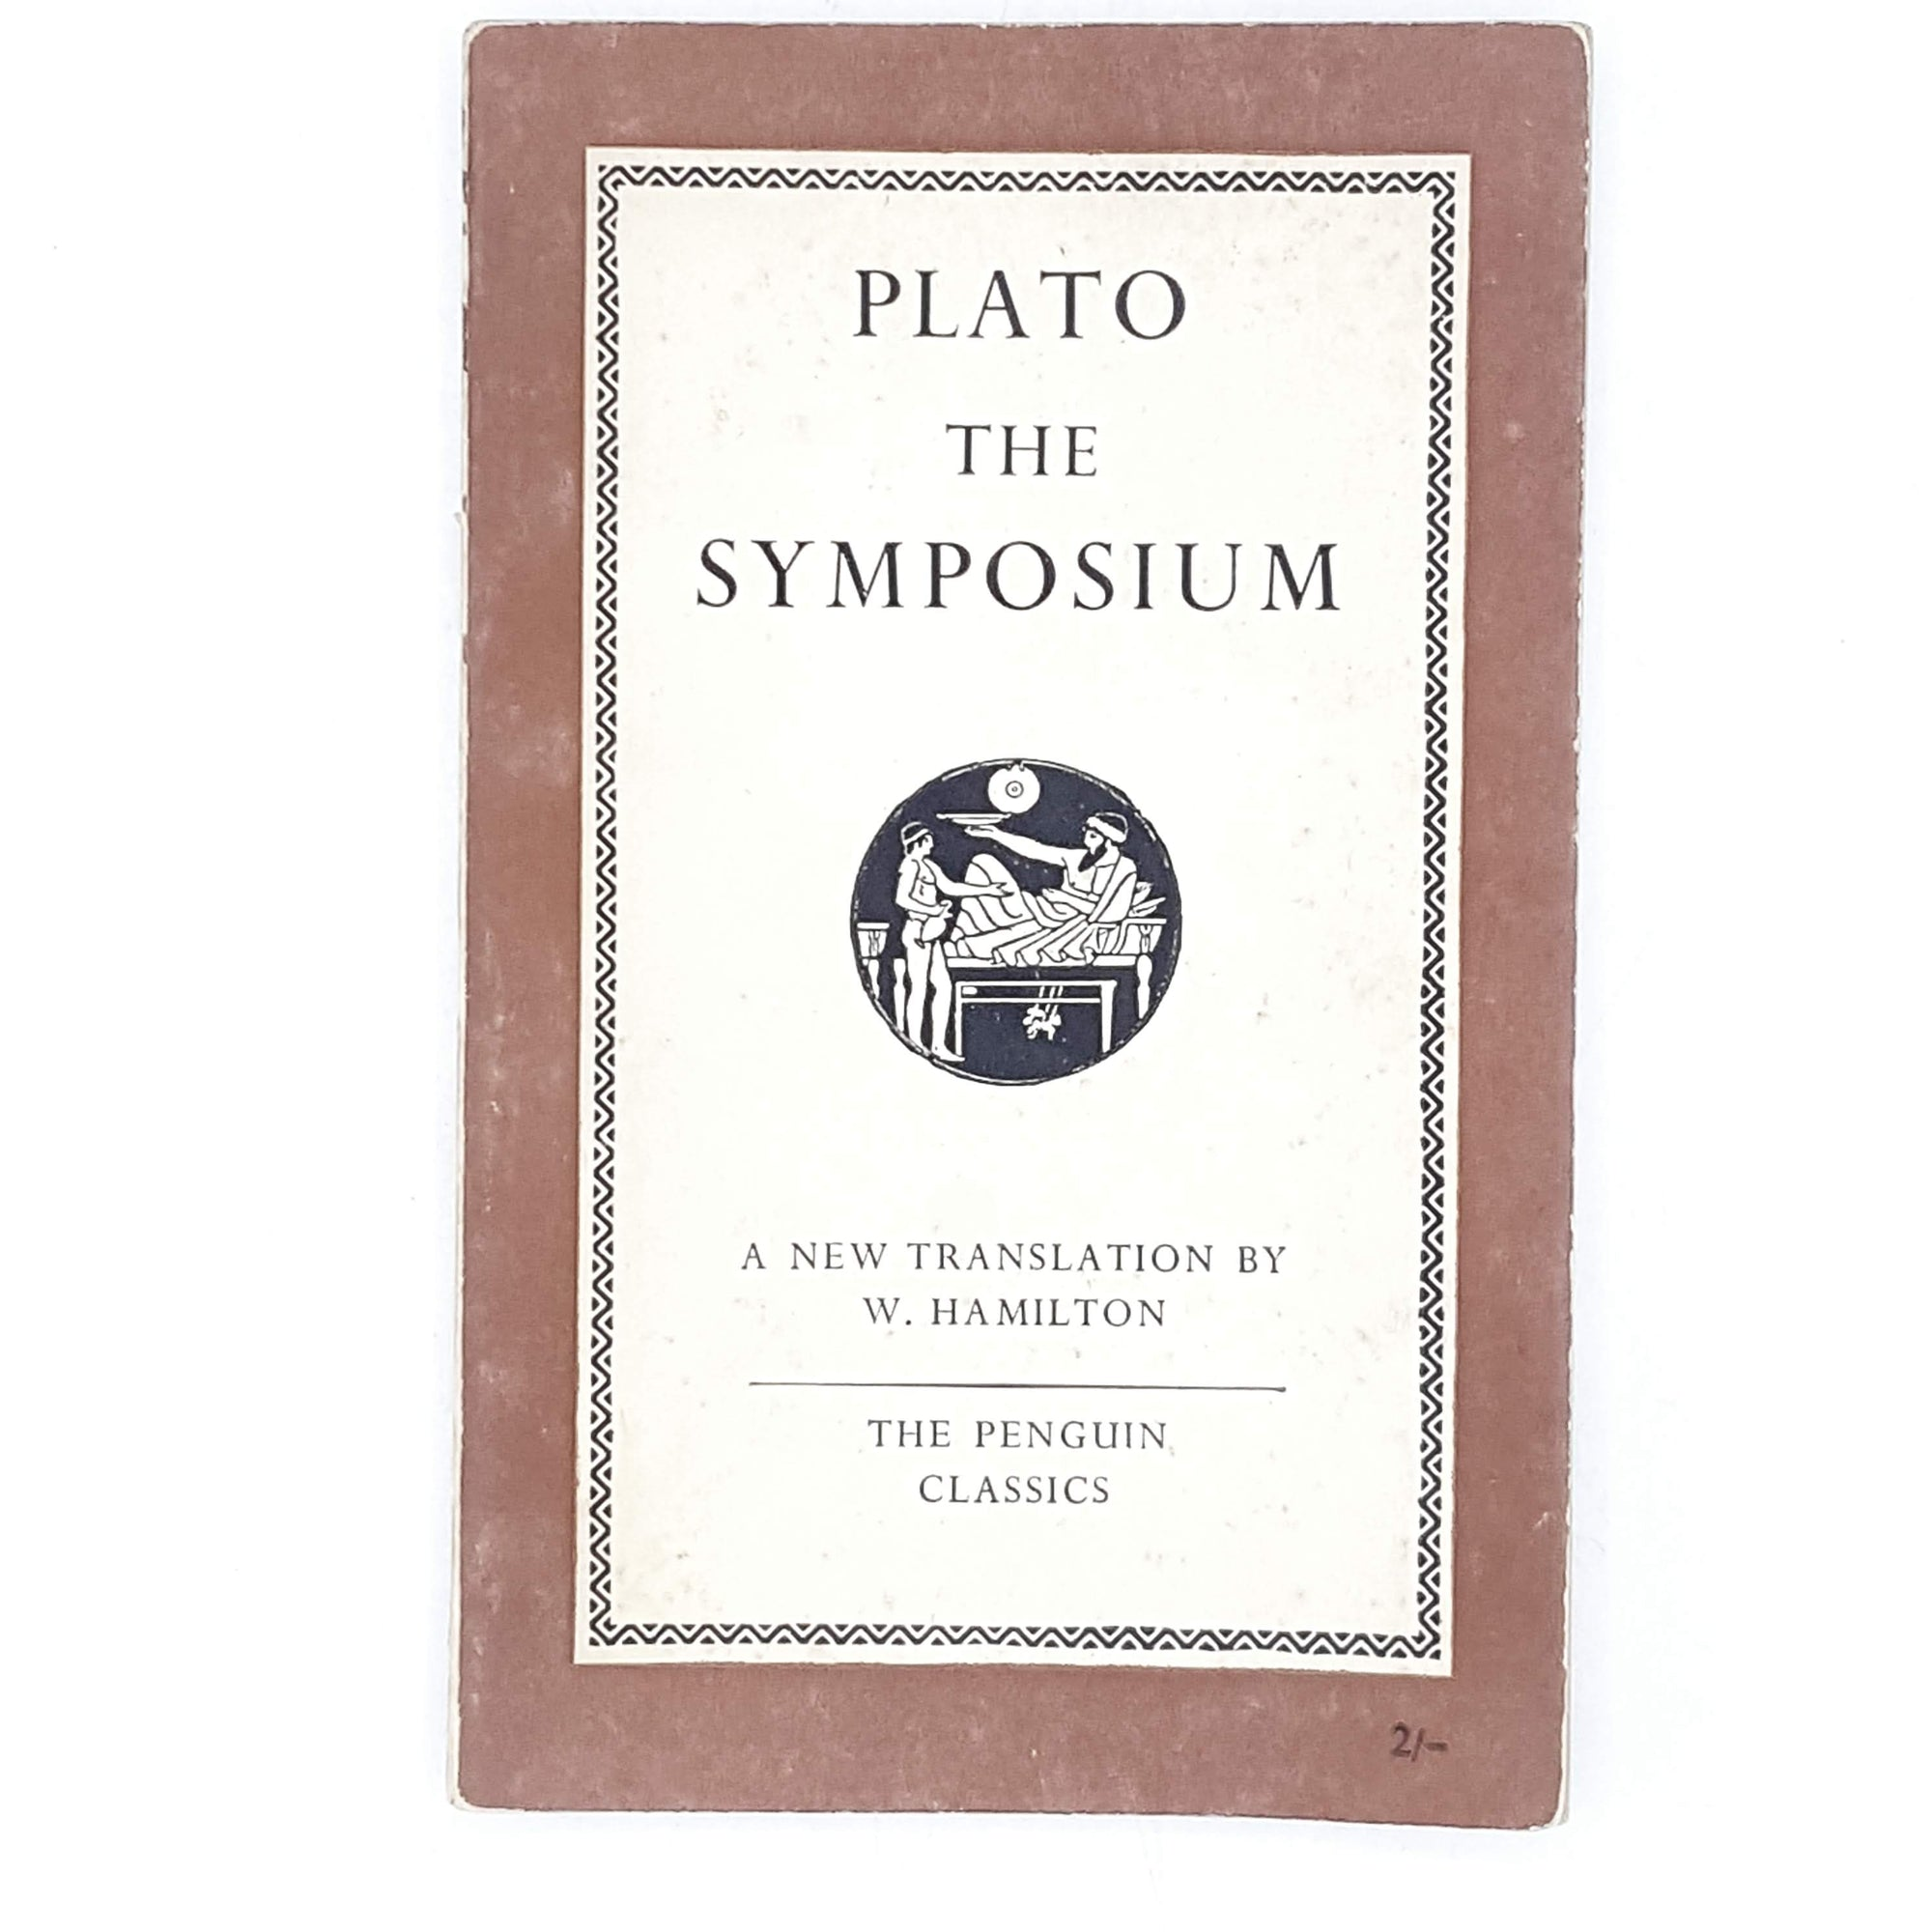 First Edition Penguin Plato's The Symposium 1951